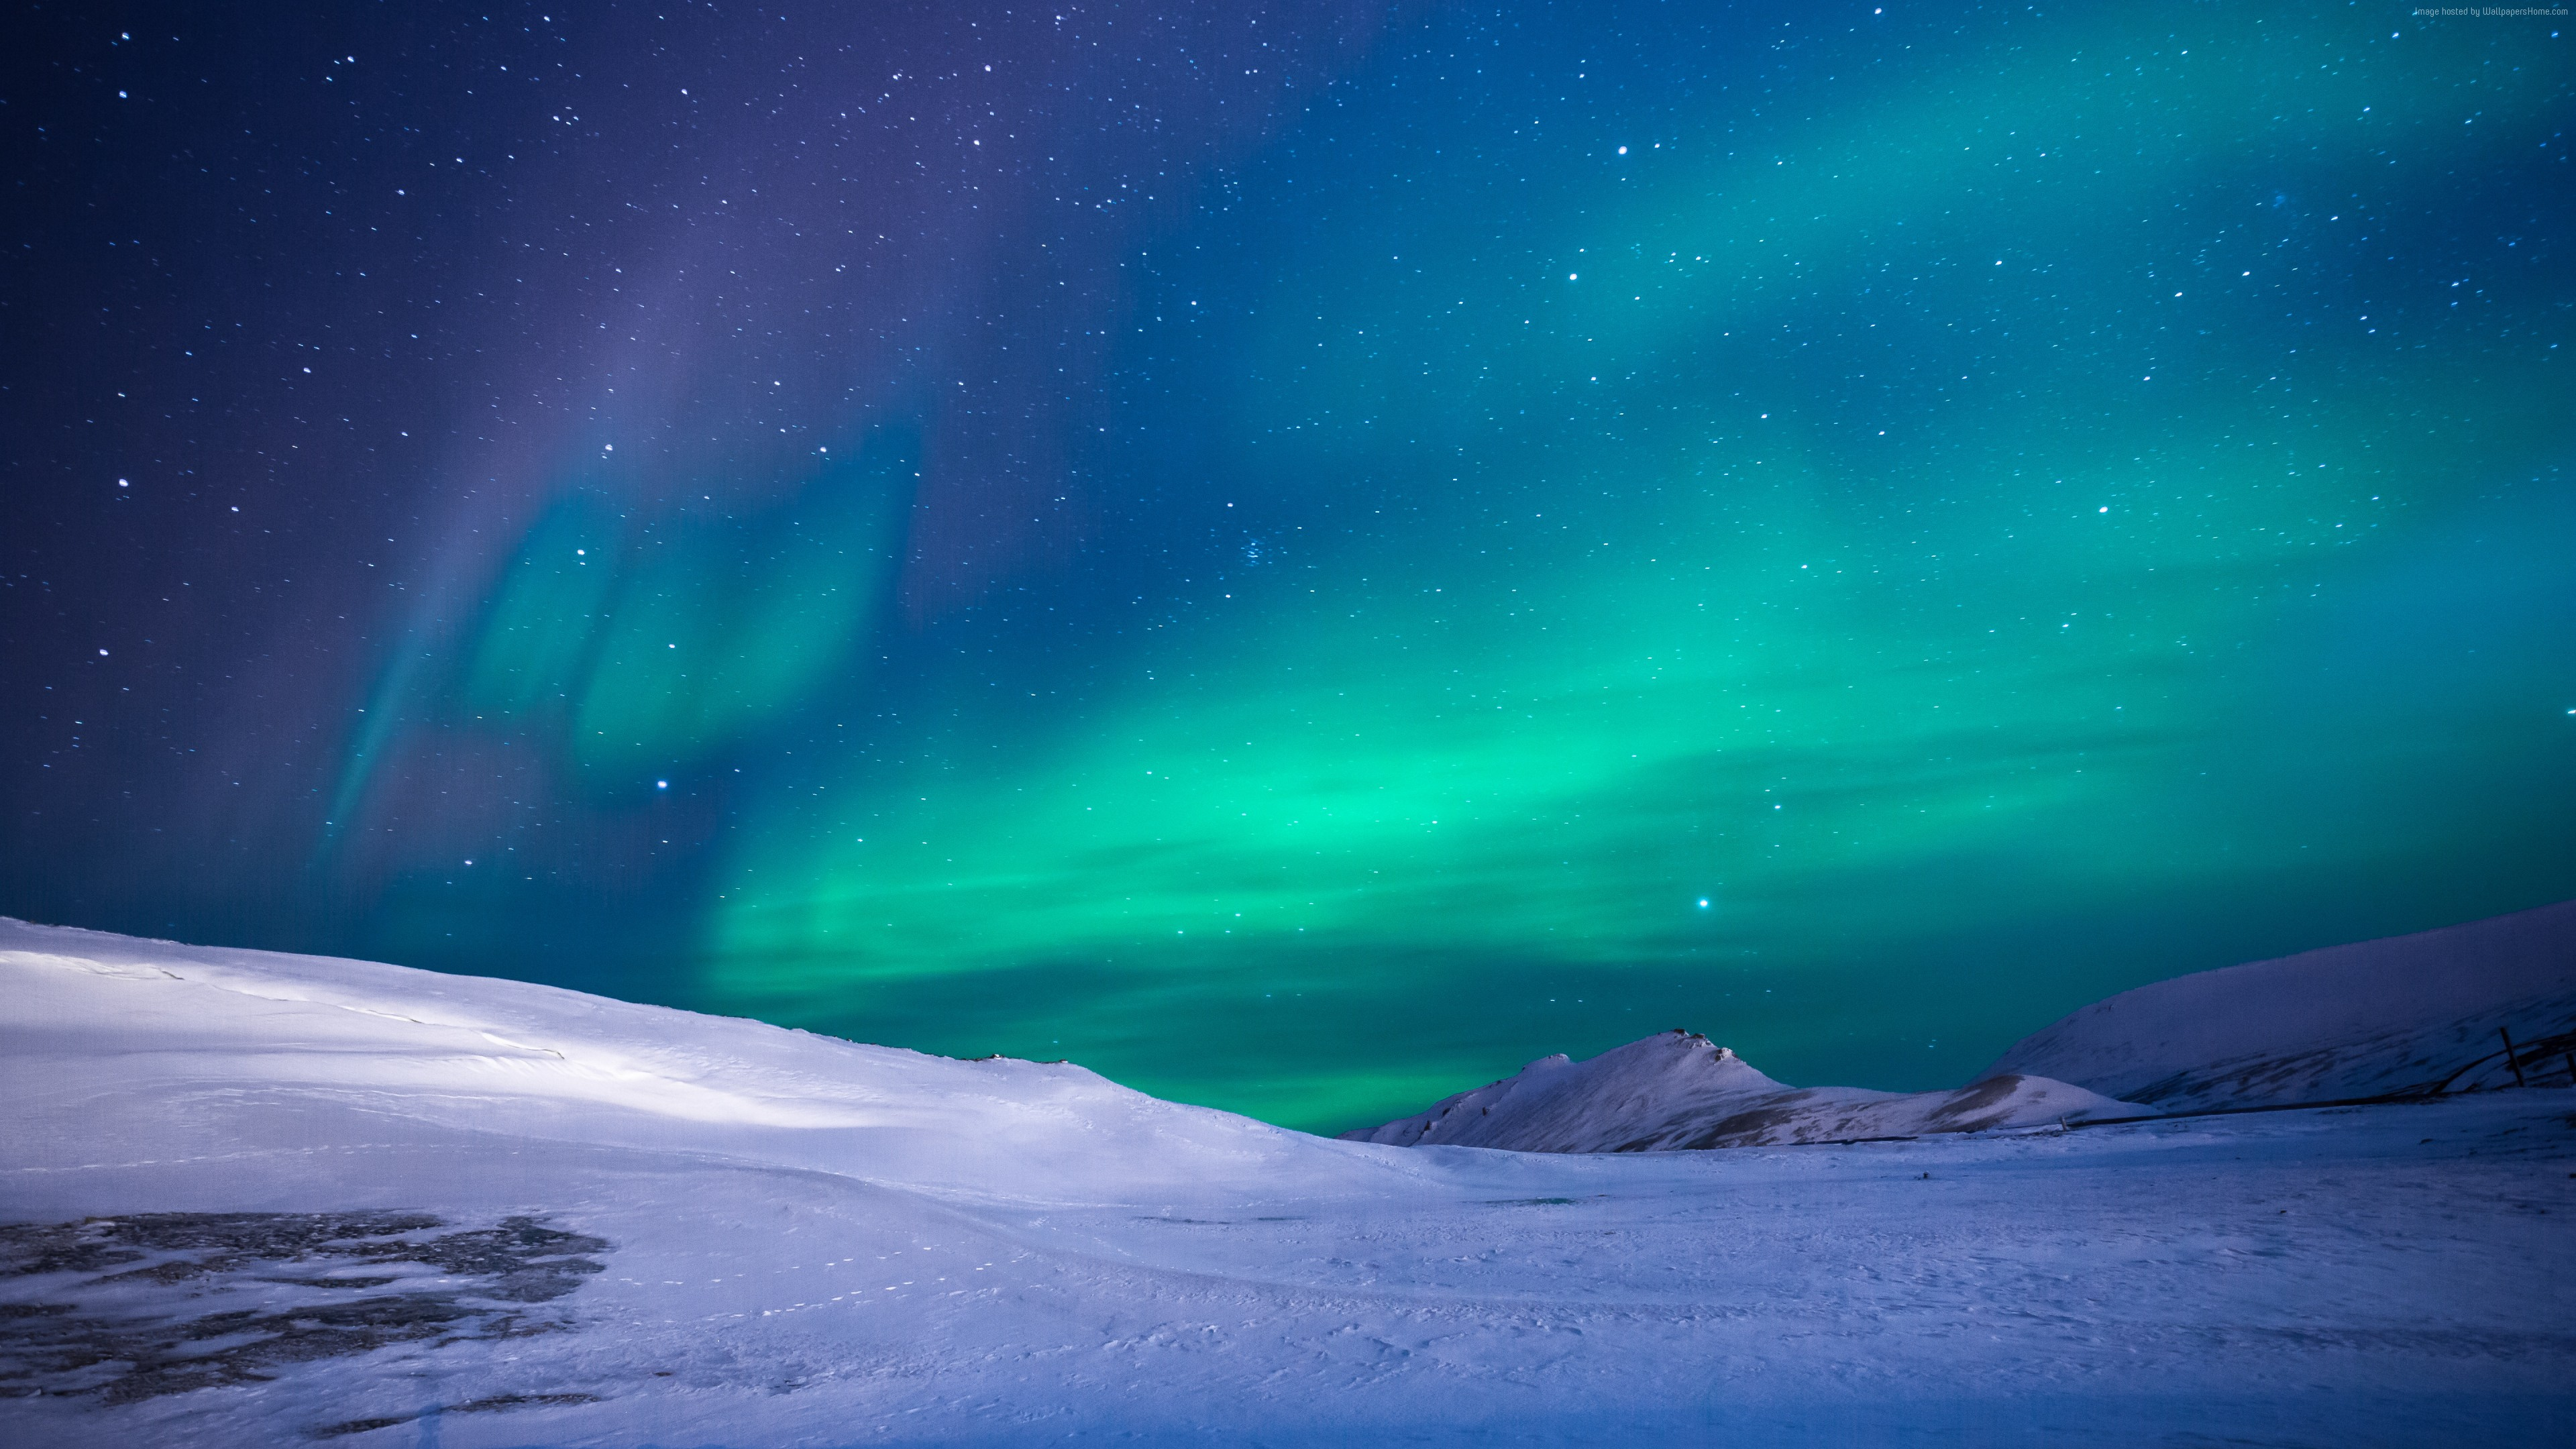 Wallpaper northern lights, sky, winter, mountains, 5k, Nature